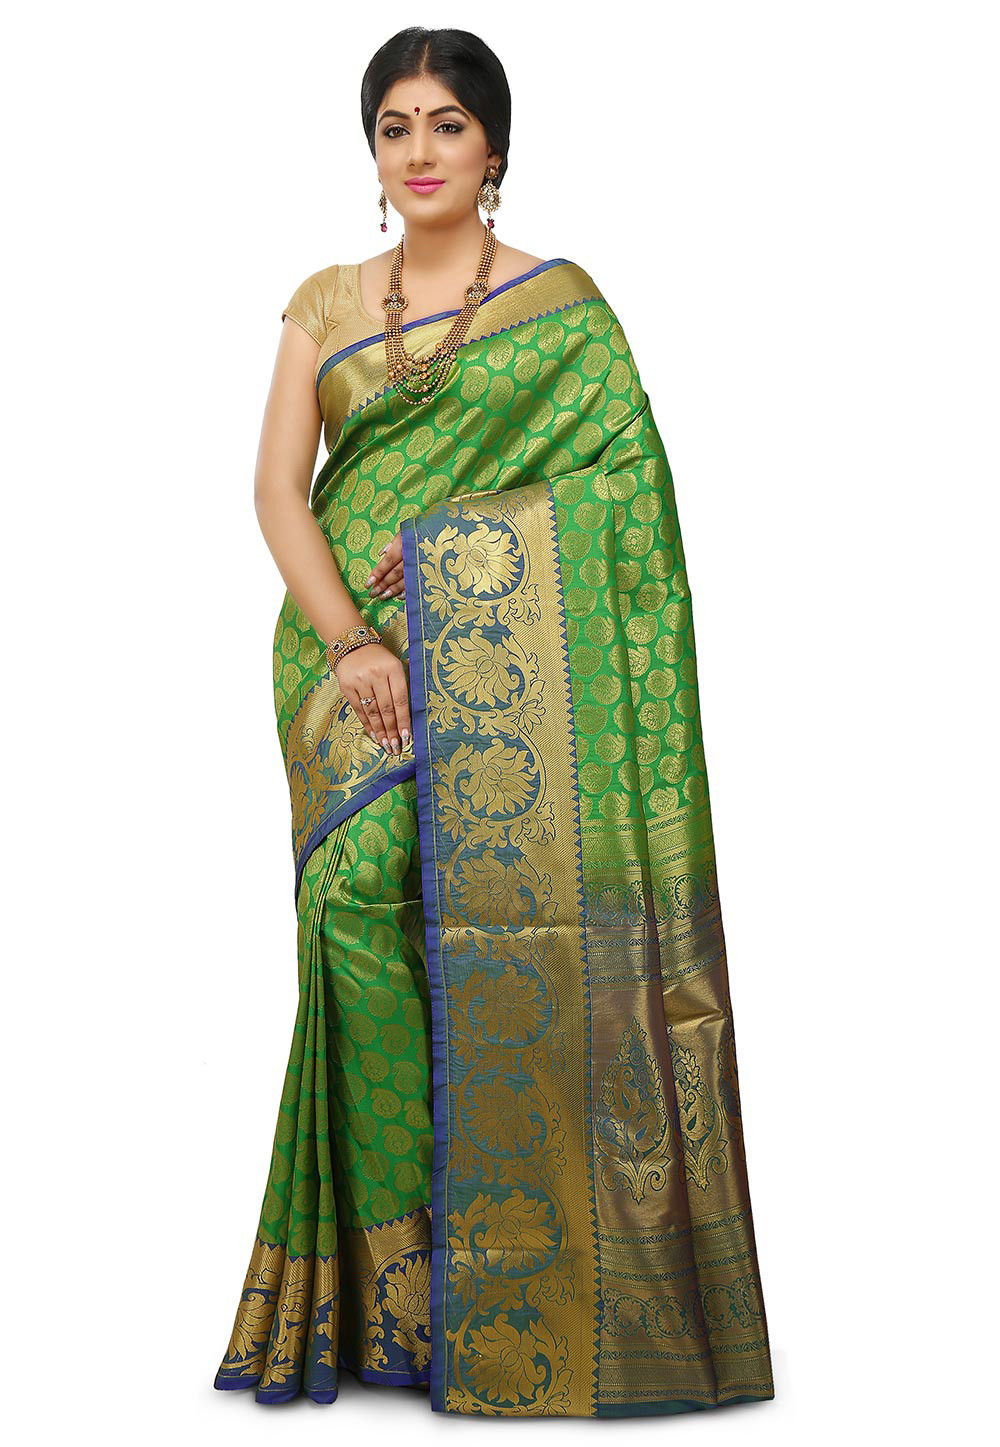 Kanchipuram Saree in Green